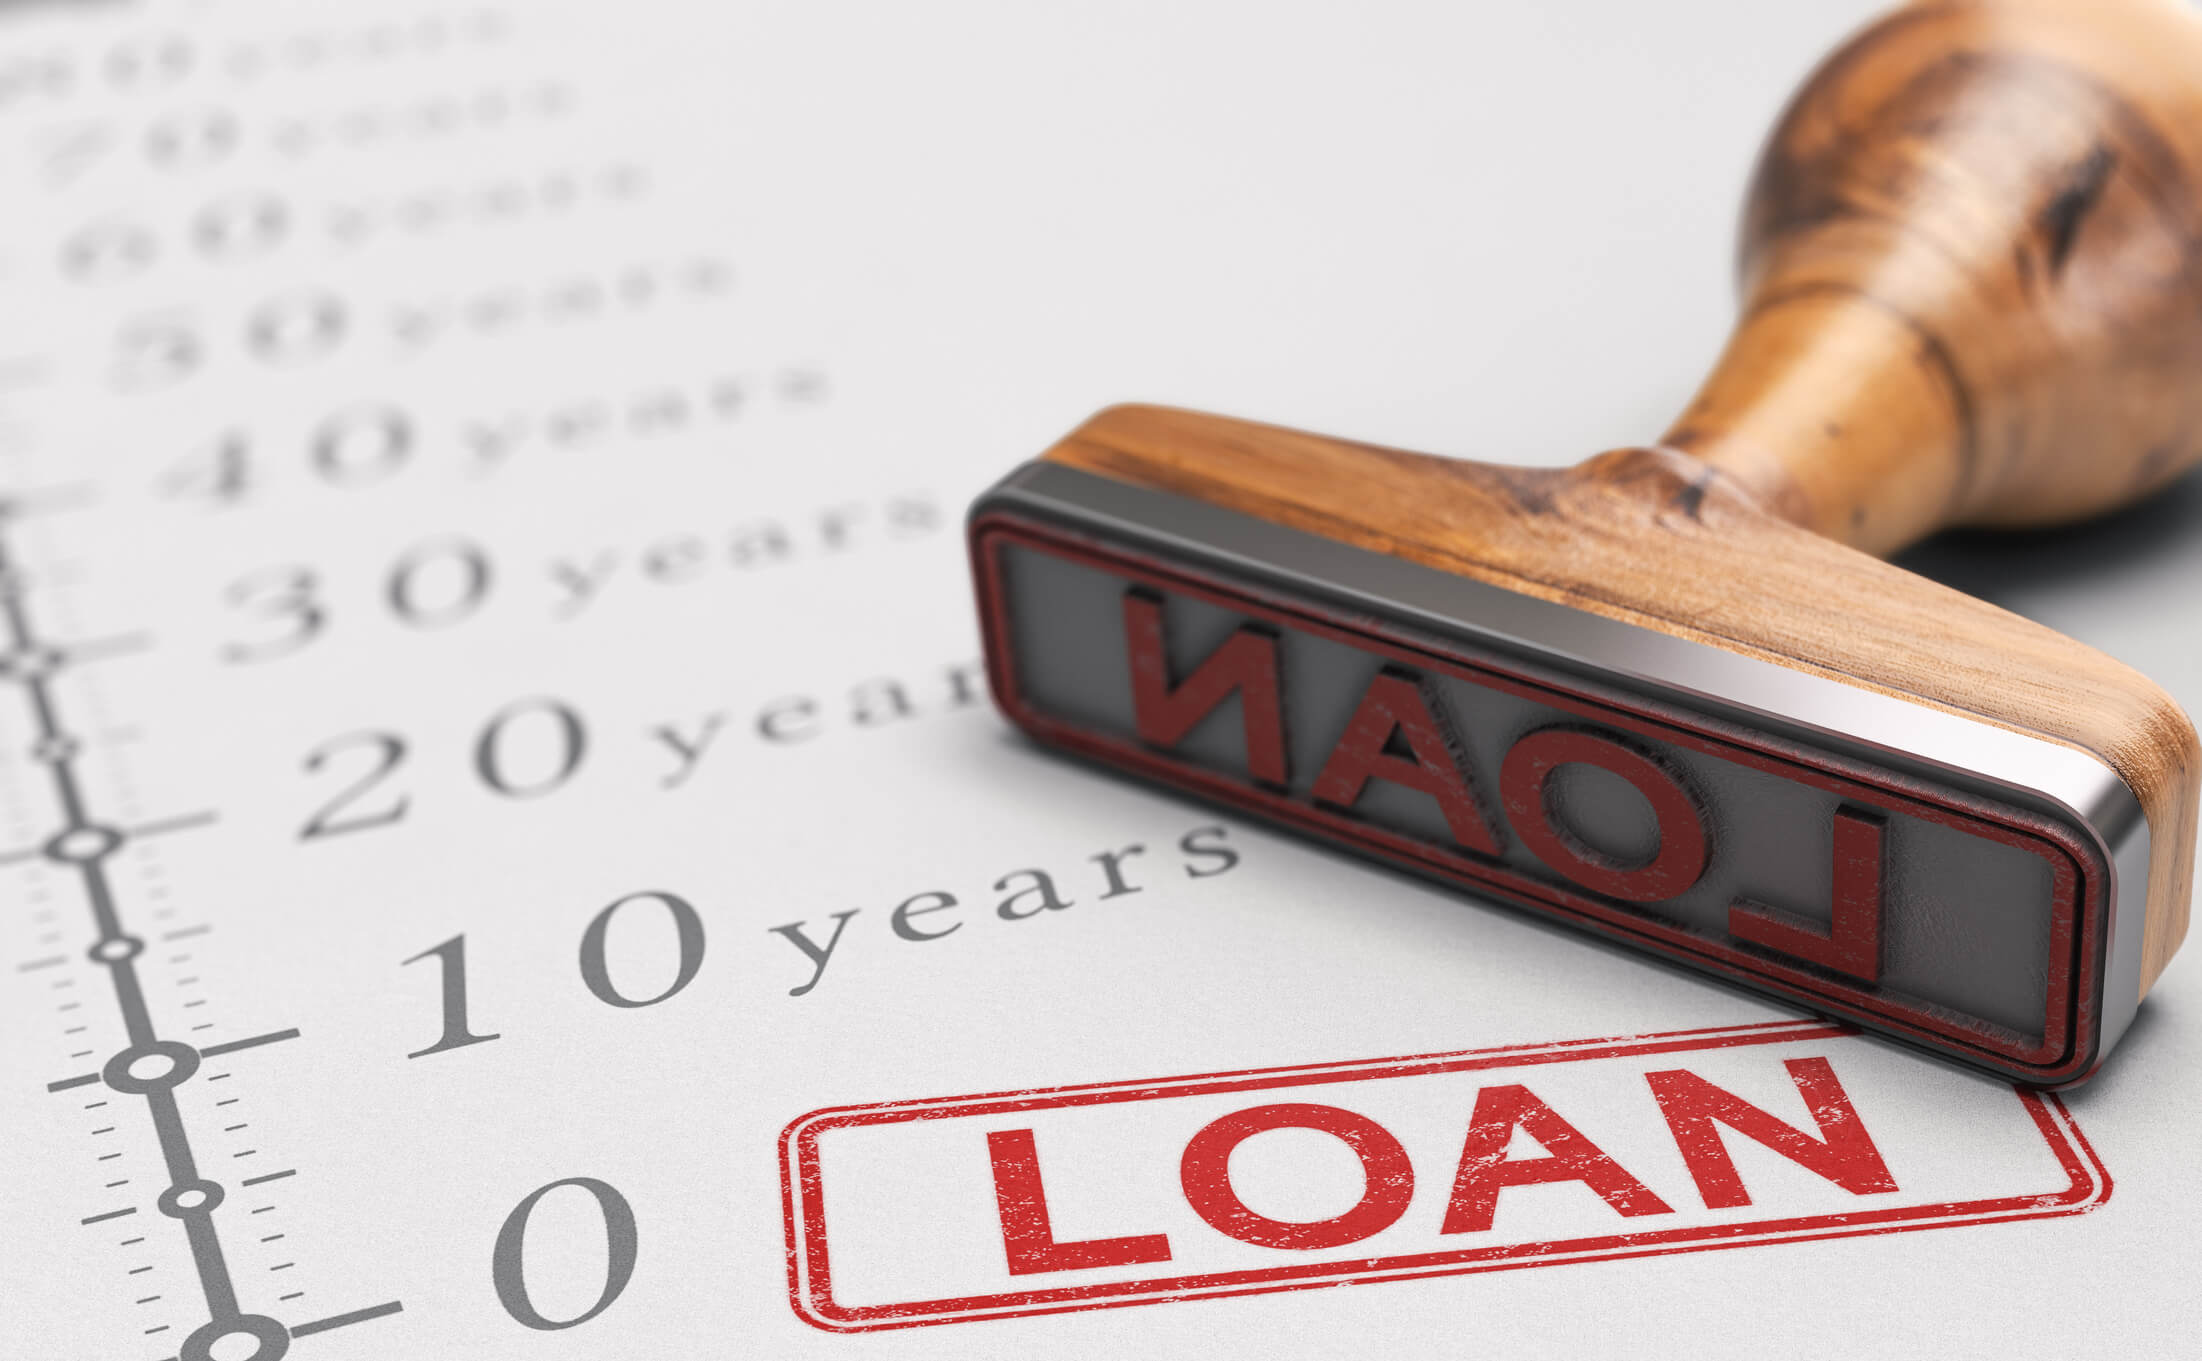 Loans & Credit - Complete Controller